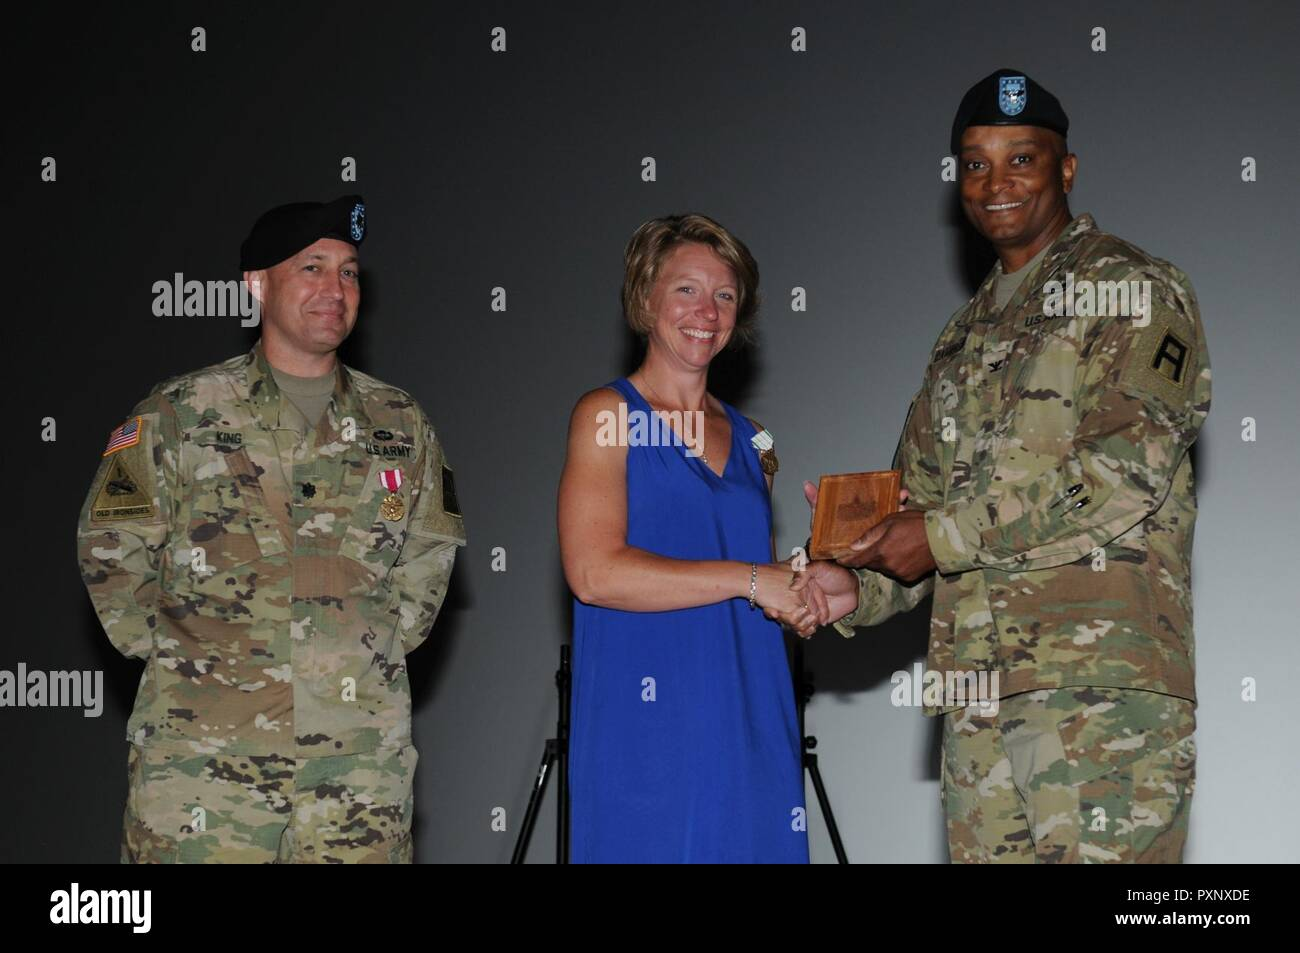 Col. Flint Patterson, commander of the 4th Cavalry Multi-Functional Training Brigade, awards Ms. Tina King and Lt. Col. Steven King, the outgoing commander of the 3rd Battalion, 337th Regiment, a gift from the 4th Cavalry MFTB for their service. The Kings served as leaders of the 3-337th family readiness group from June 6, 2015, to June 4, 2017. - Stock Image